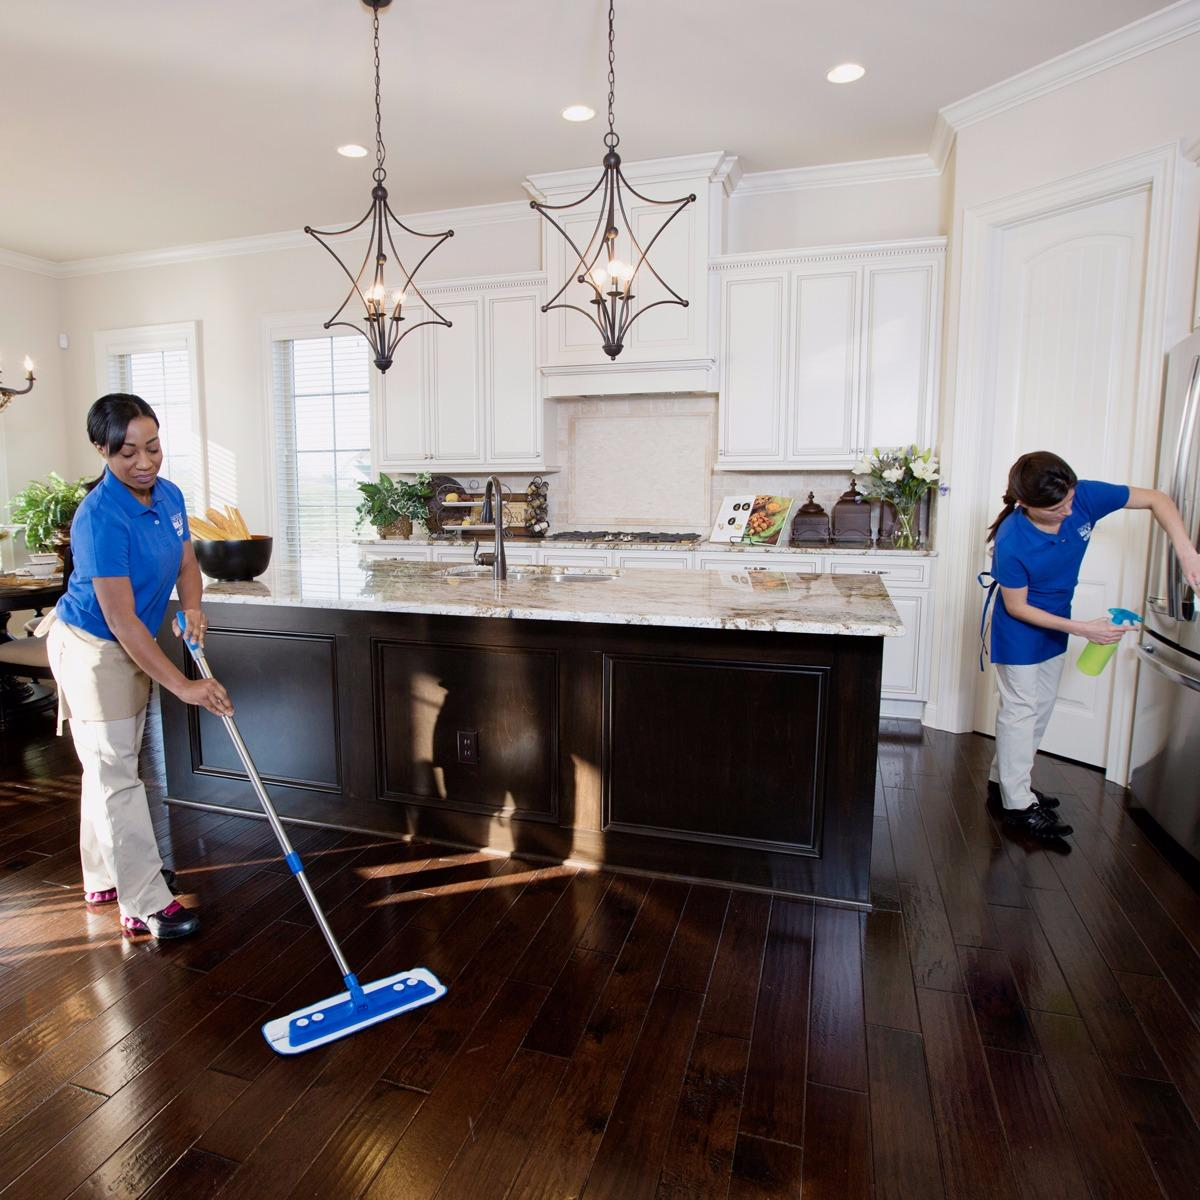 sears maid services - house cleaning service